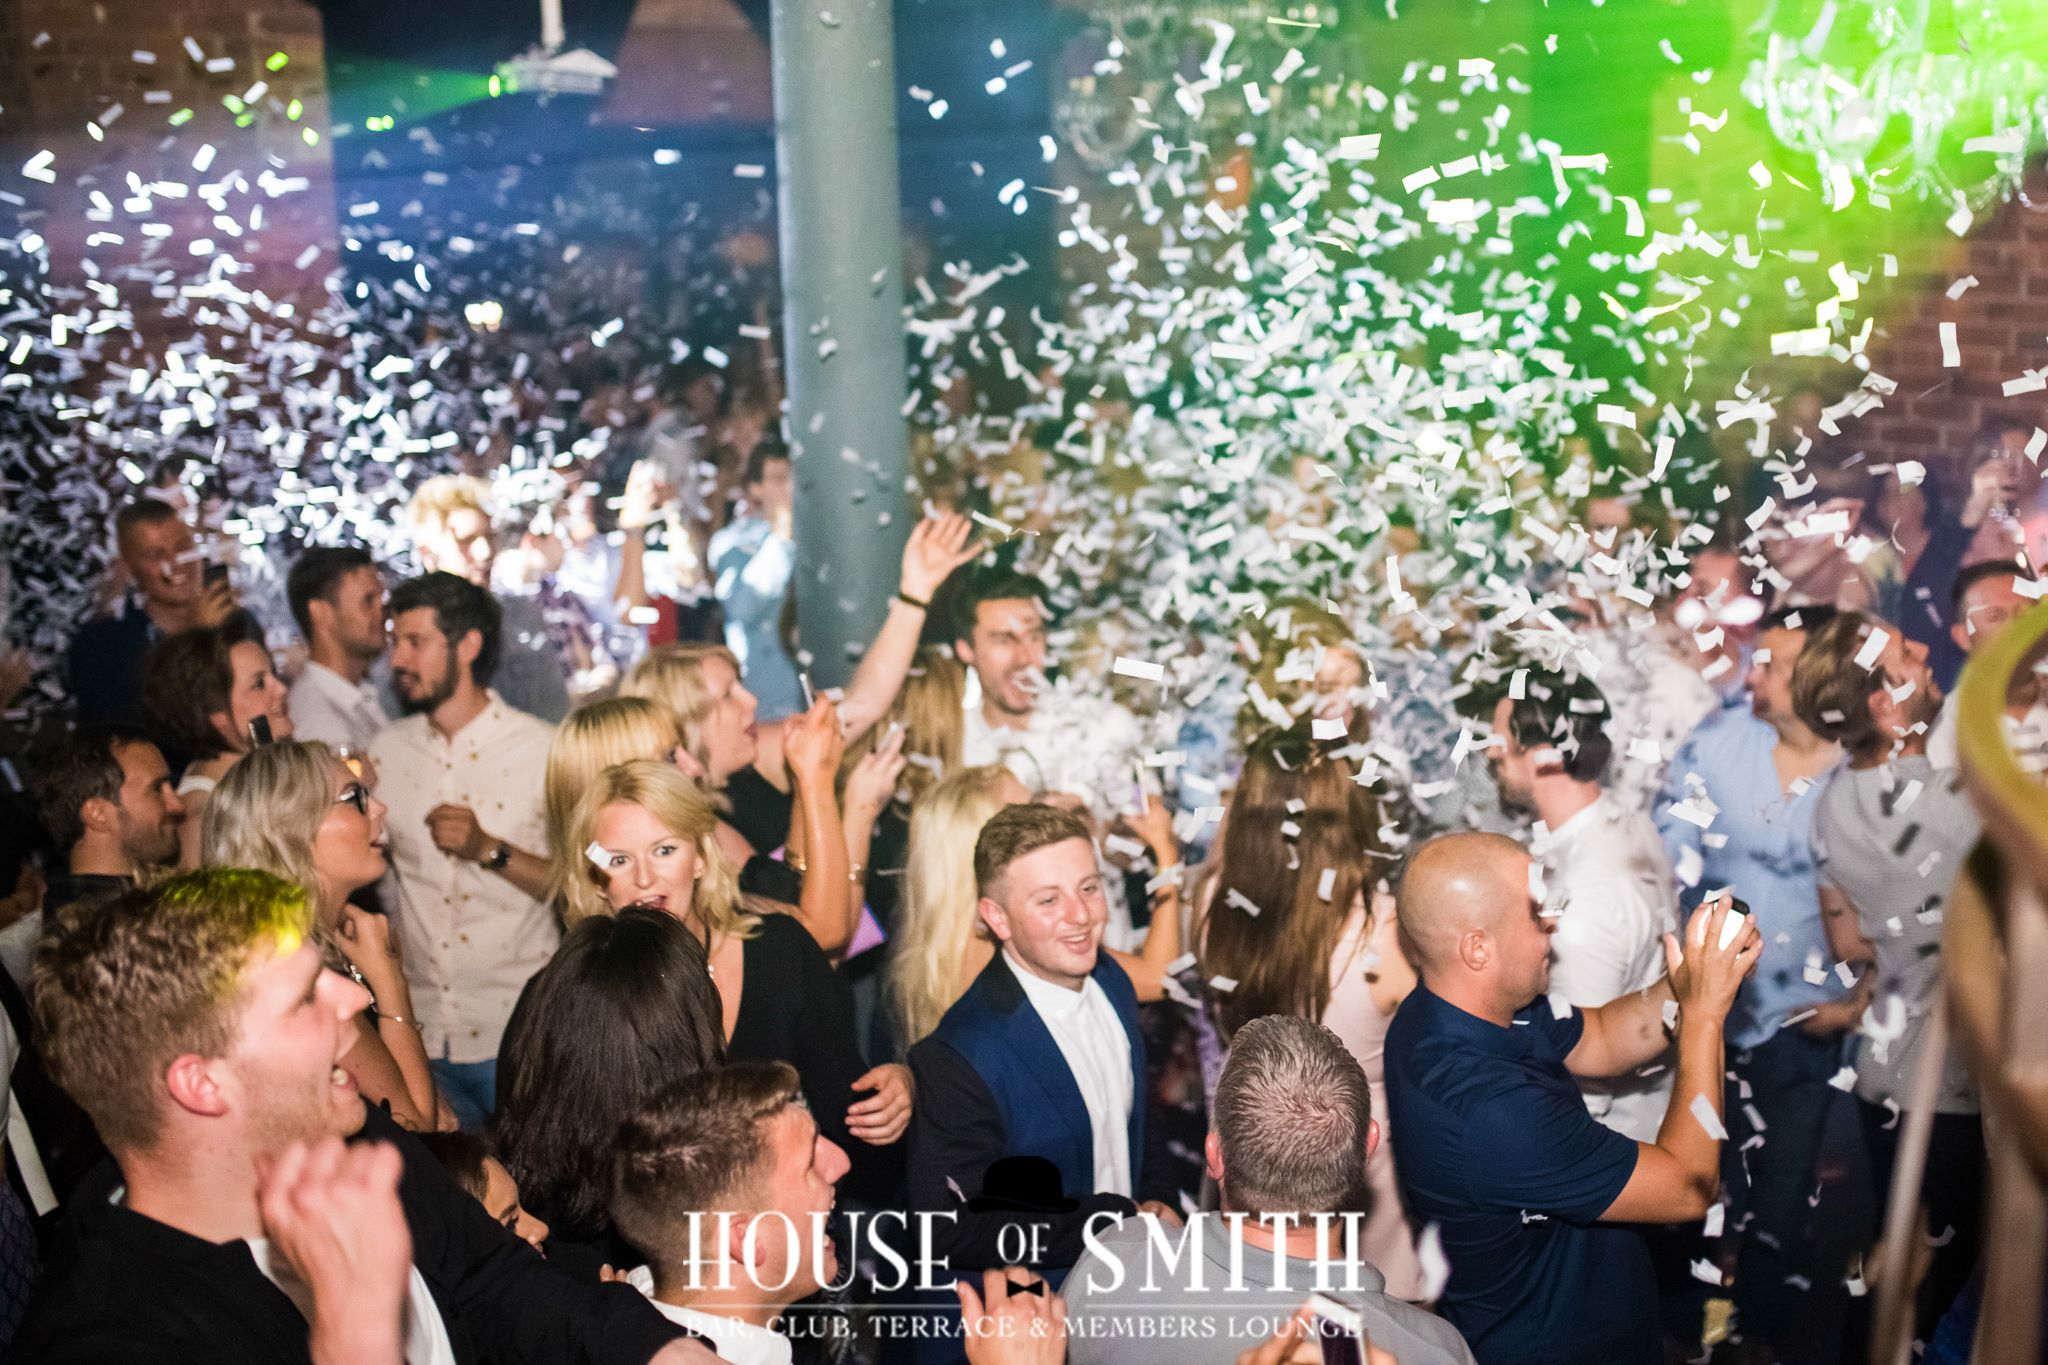 Confetti being let off into a crowd in House of Smith, where celebrities spend nights out in Newcastle